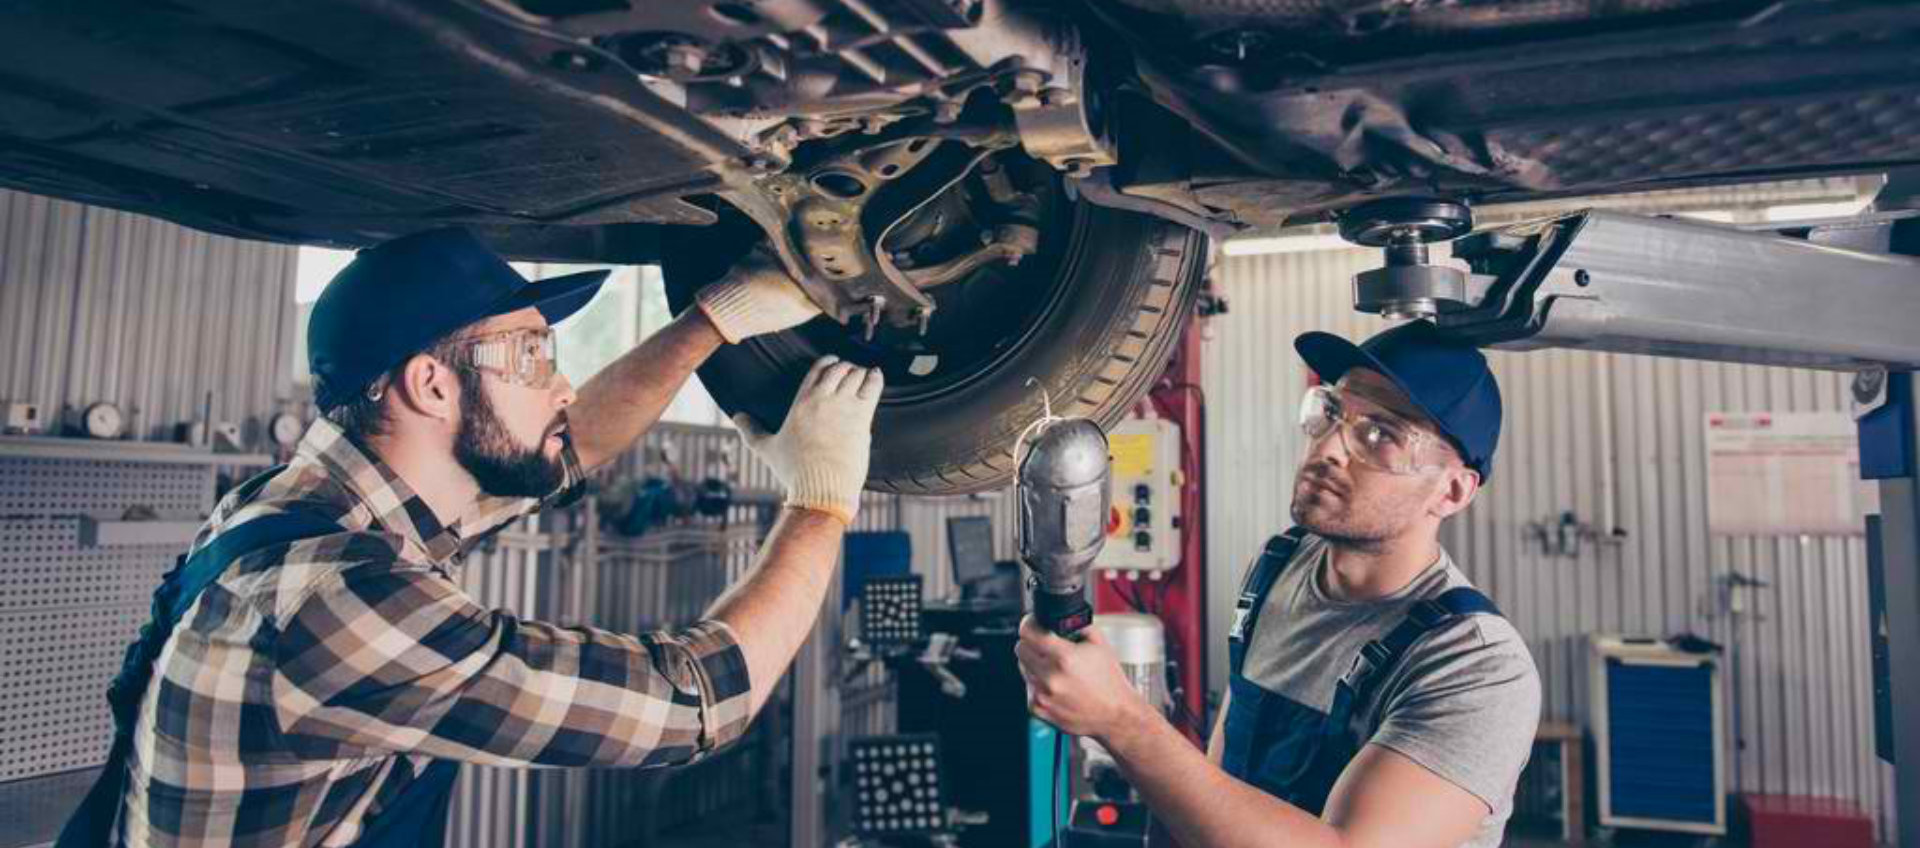 two men mechanics are working together to fixed the break of a car